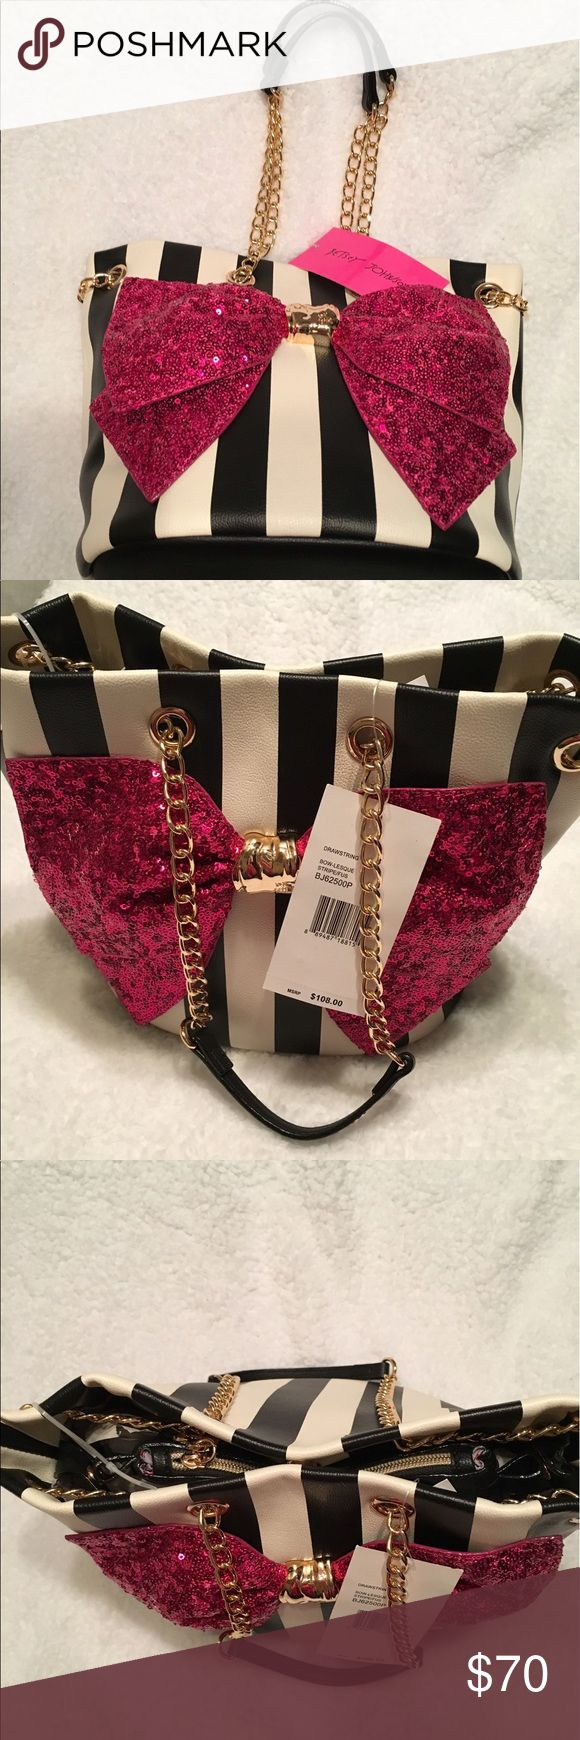 NWT Betsey Johnson black and white striped purse New Betsey Johnson black and white striped purse with pink sequin bow. Has gold chain handles. Button closure. Inside pocket with zipper and a large open pocket. Also comes with a makeup size black leather bag with zipper that can be buttoned to the inside of the purse for easy access. Black string attached to the inside of the purse with a key clip so you won't lose your keys. Adorable purse and very functional! Betsey Johnson Bags Shoulder…